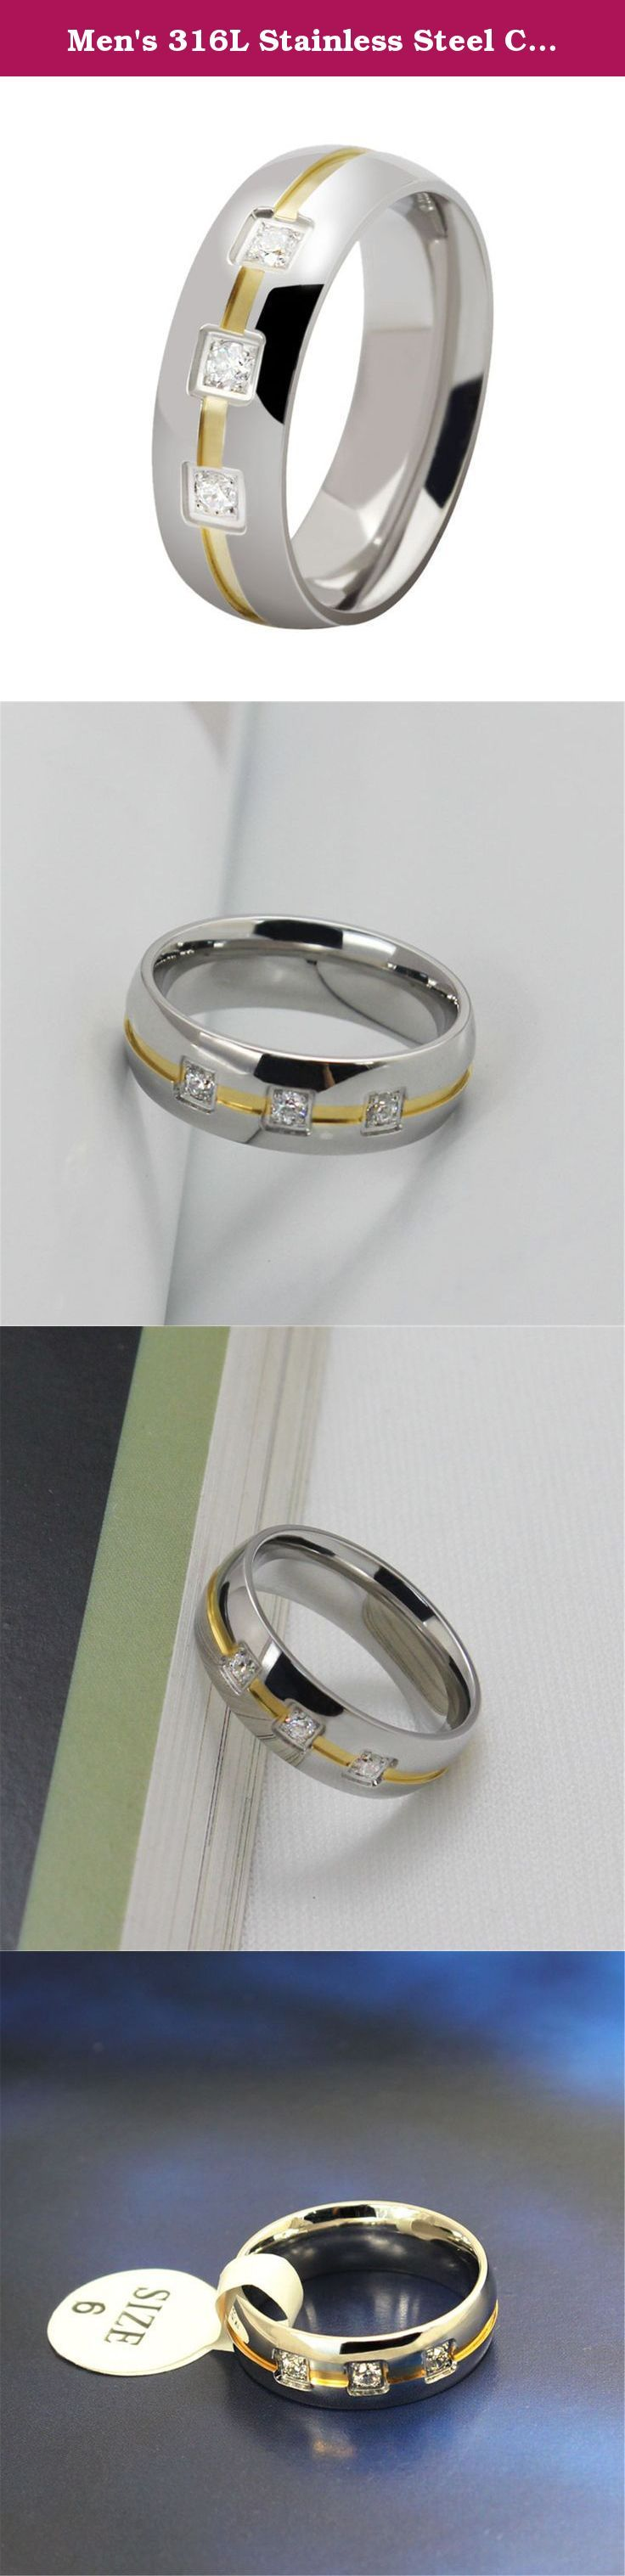 Men's 316L Stainless Steel Cubic Zircon Ring Domed Design Band Ring. Men's 316L Stainless Steel Cubic Zircon Inlaid Domed Design 2 Tone Silver Gold Ring 6mm How to know your size: Step 1: Cut a strip of paper long enough to fit around your finger. Step 2: Wrap the paper somewhat tightly around your finger at the knuckle and mark where the two ends meet. Step 3: Measure the length of the paper from the end to your pencil mark. Warm tips: The paper measurement is intended for reference…